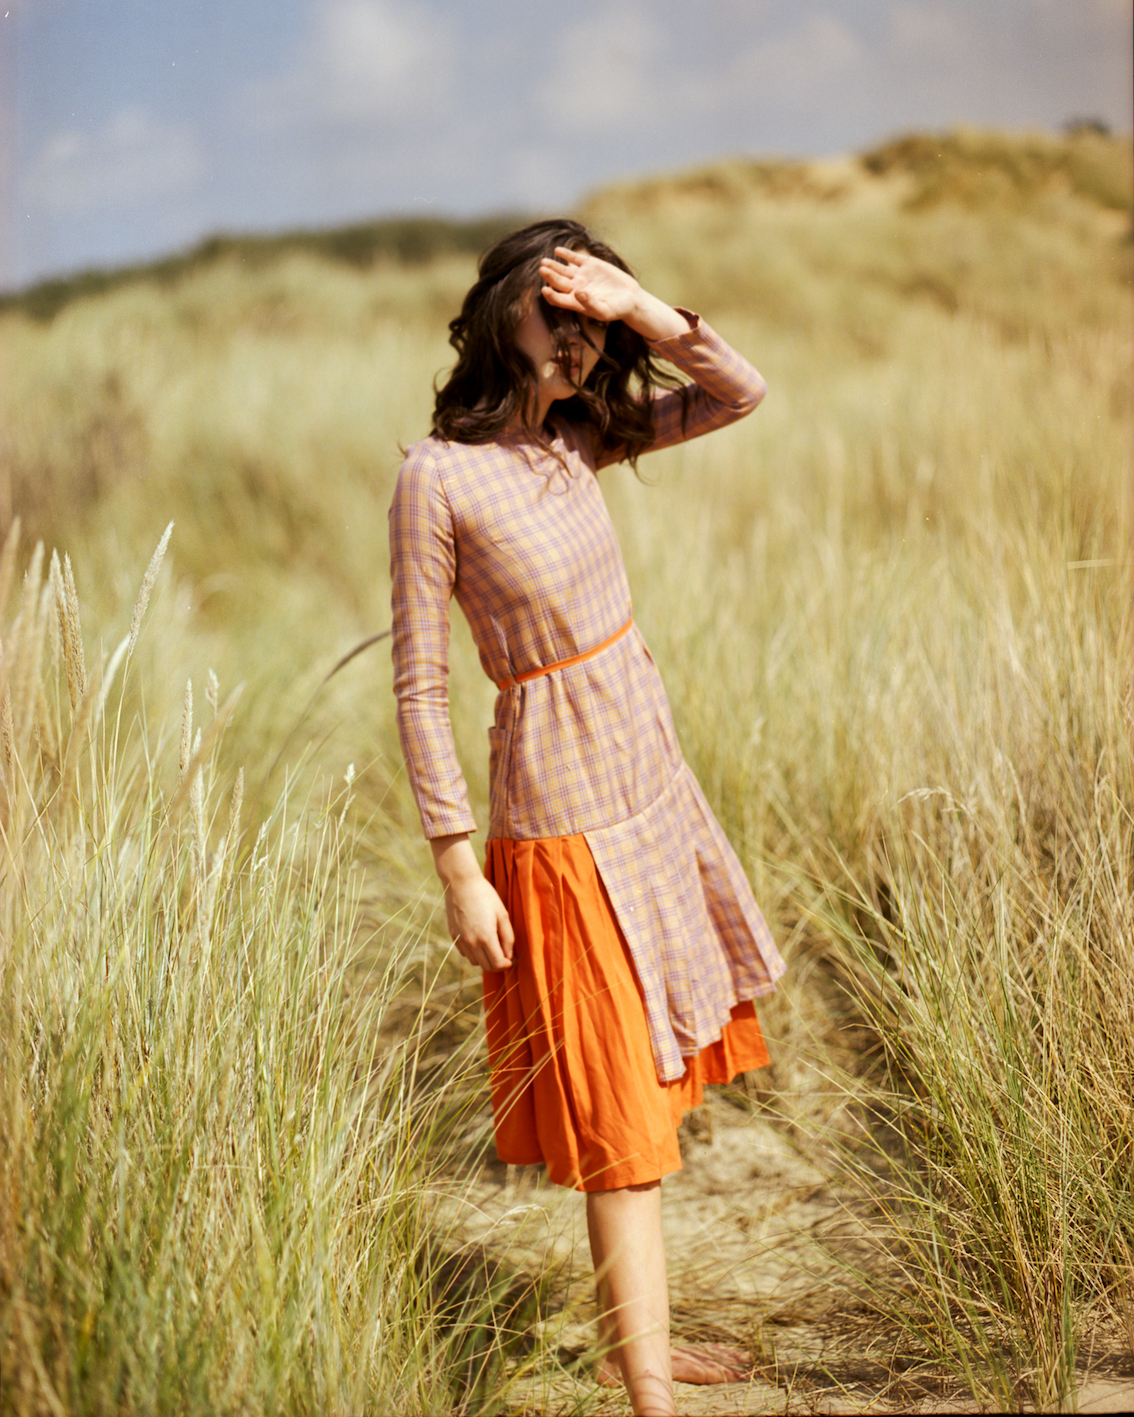 oshadi lookbook, girl in orange dress in field